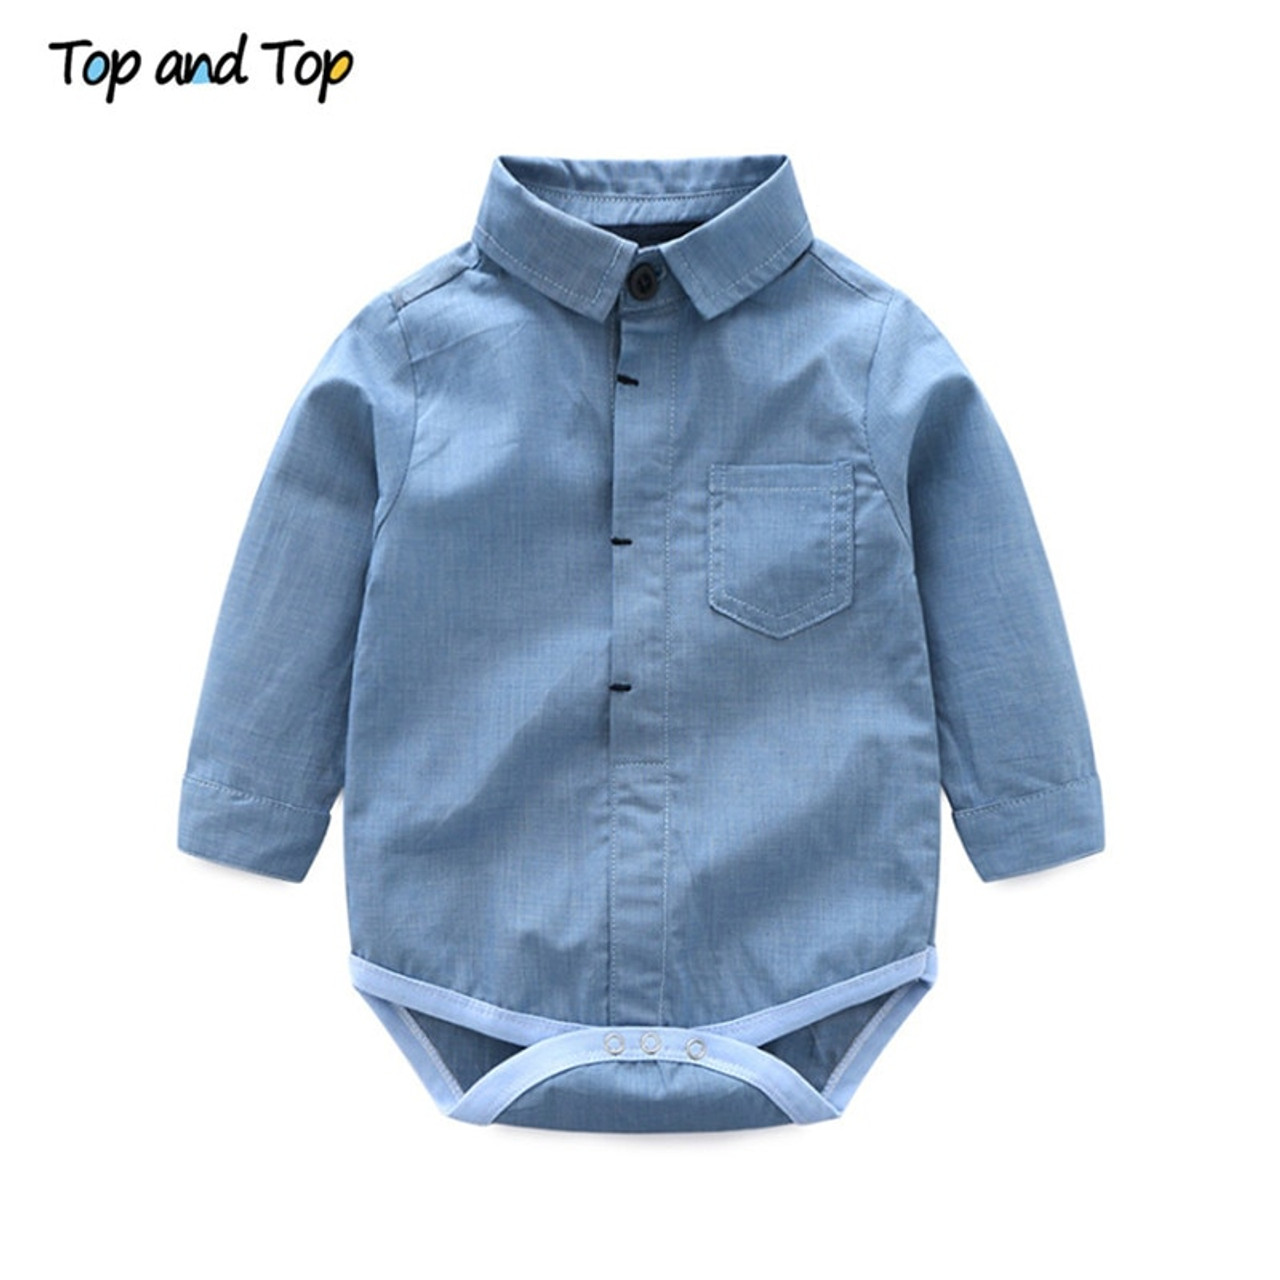 Boys Outfits 2PCS  Suit Wedding Boy Baby Formal Party Clothes Shirt Romper Top